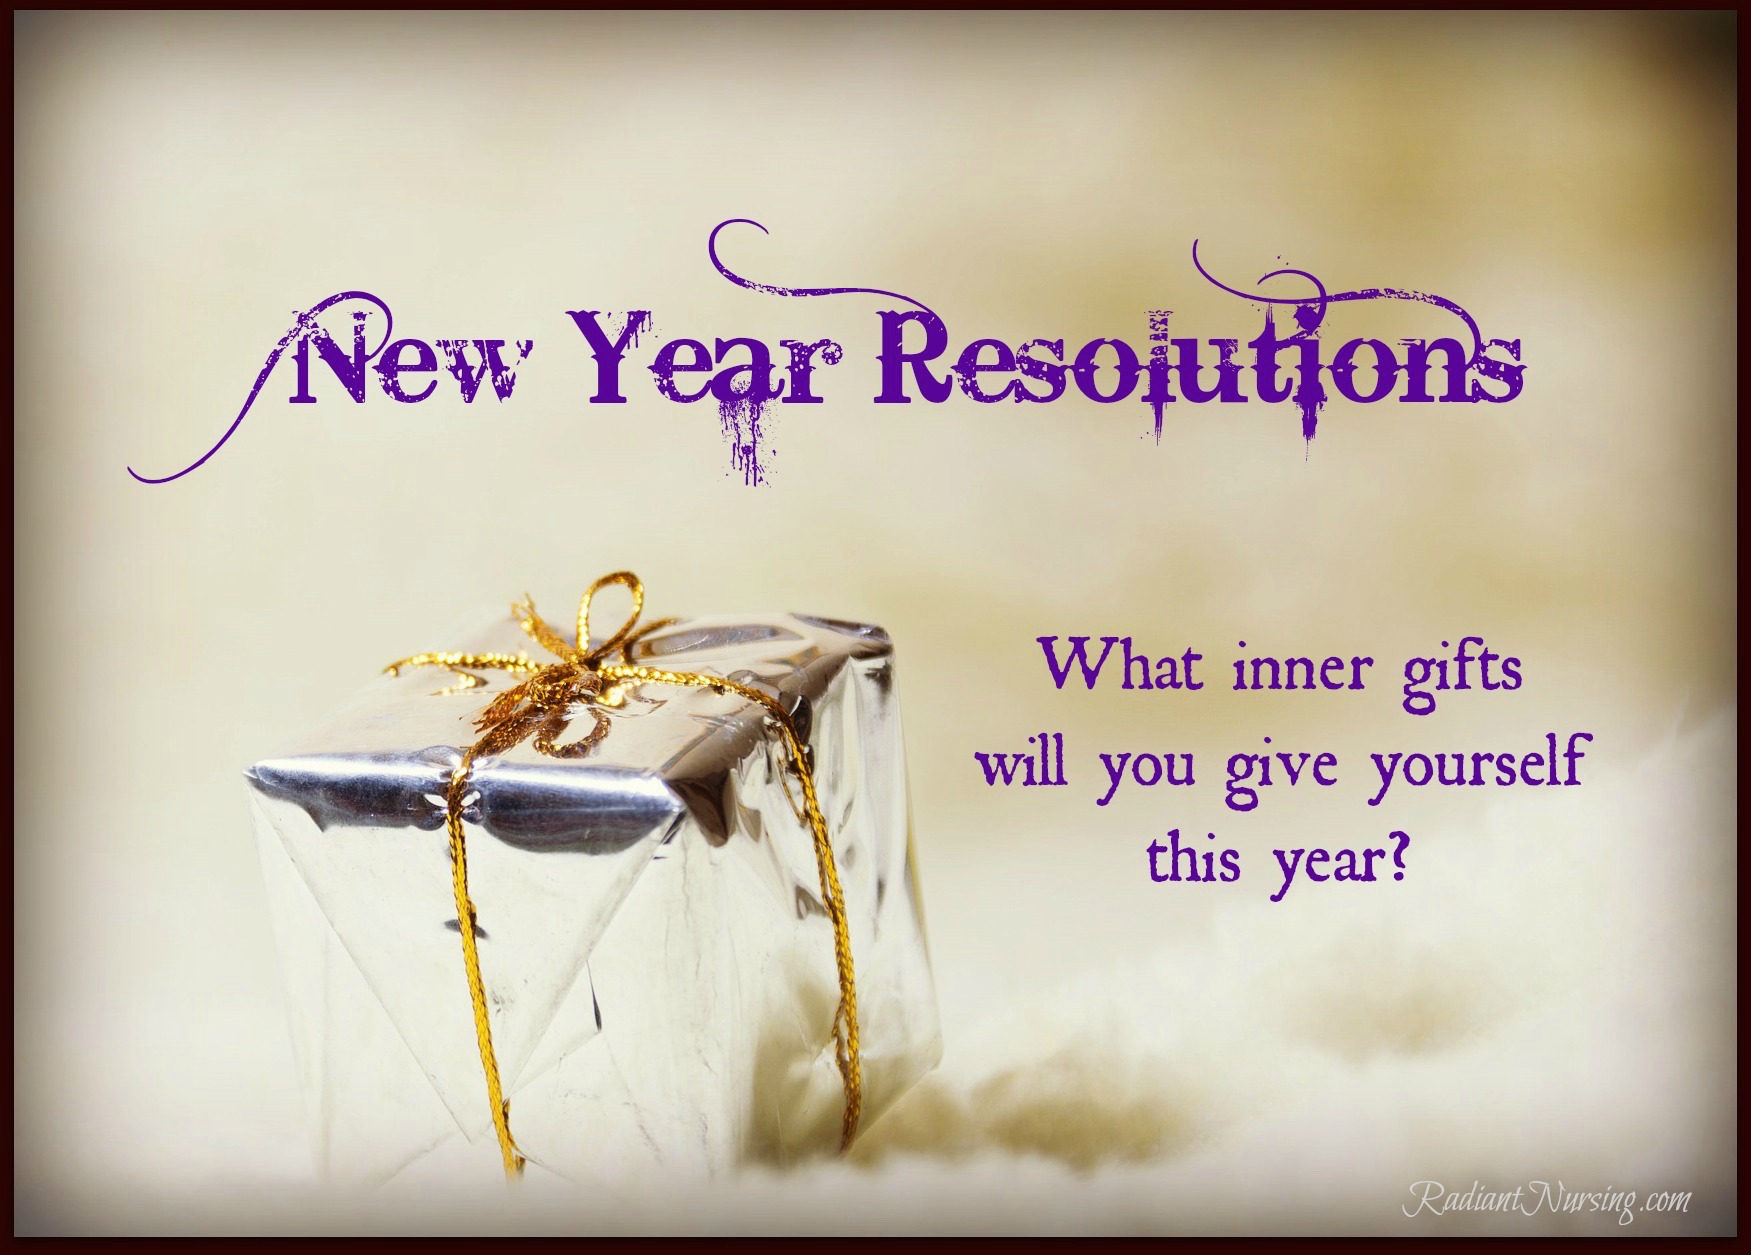 New Year Resolutions with Radiant Nursing.